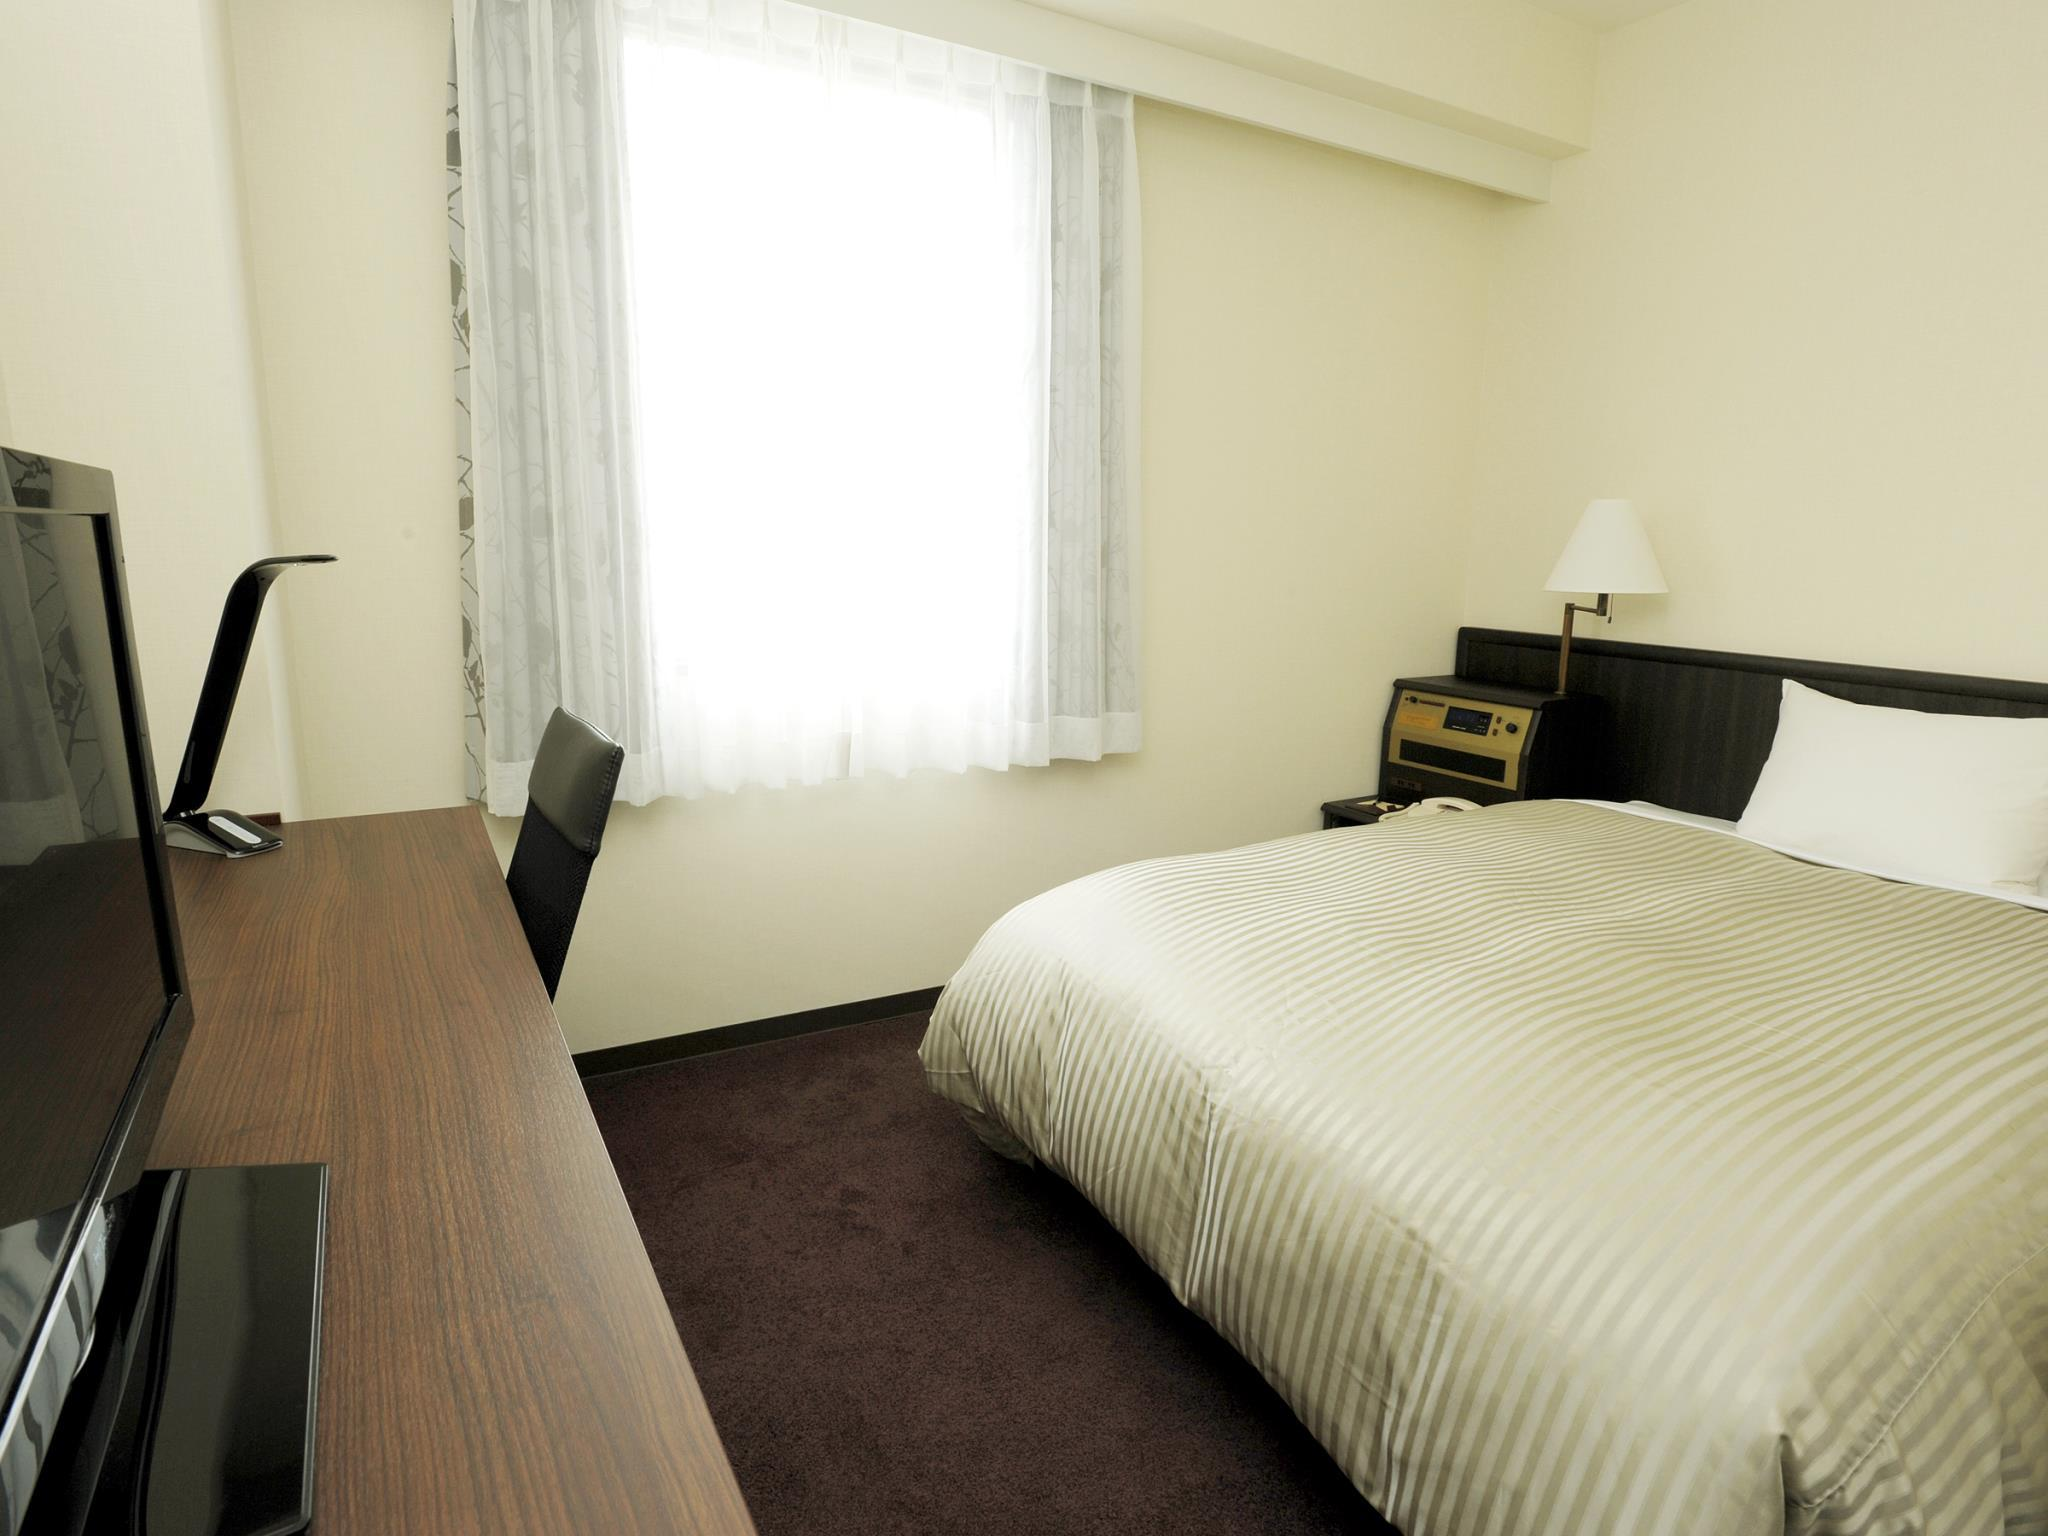 【新装】セミダブルルーム(禁煙) (Semi-Double Room - Non-Smoking, Newly Renovated)